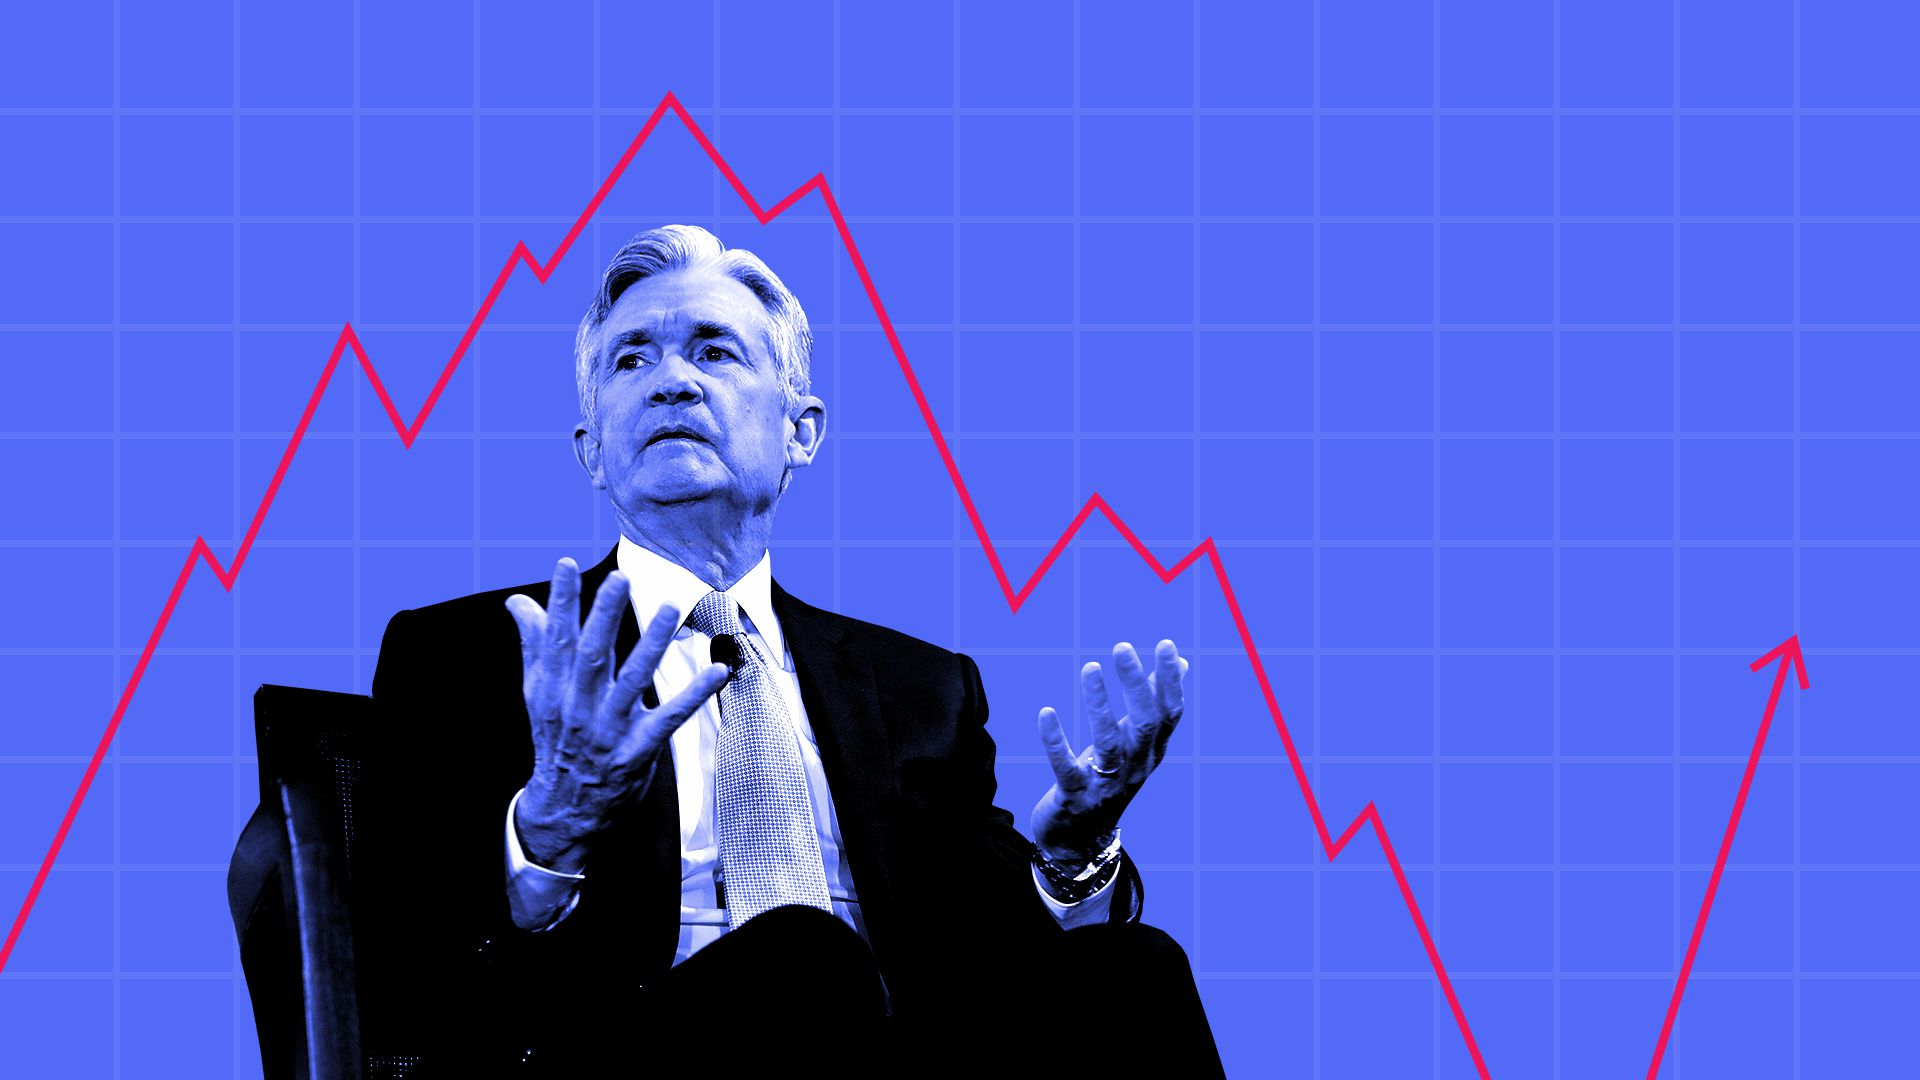 Illustration of Jerome Powell influencing stock chart